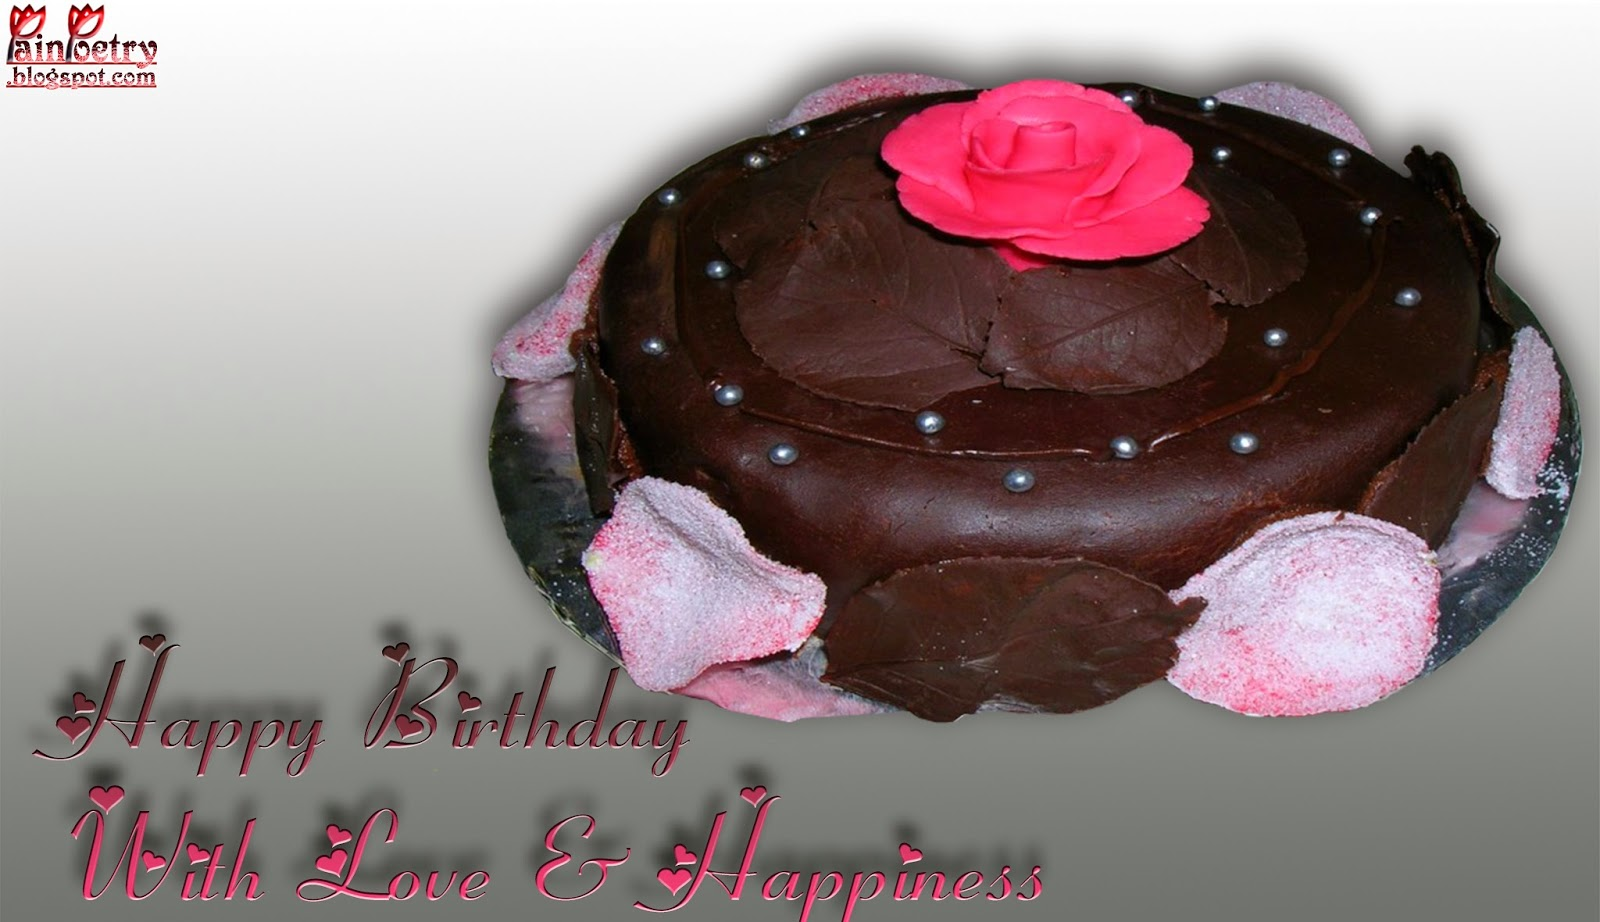 Happy-Birthday-With-Chocolate-Cake-Wallpaper-Image-HD-Wide